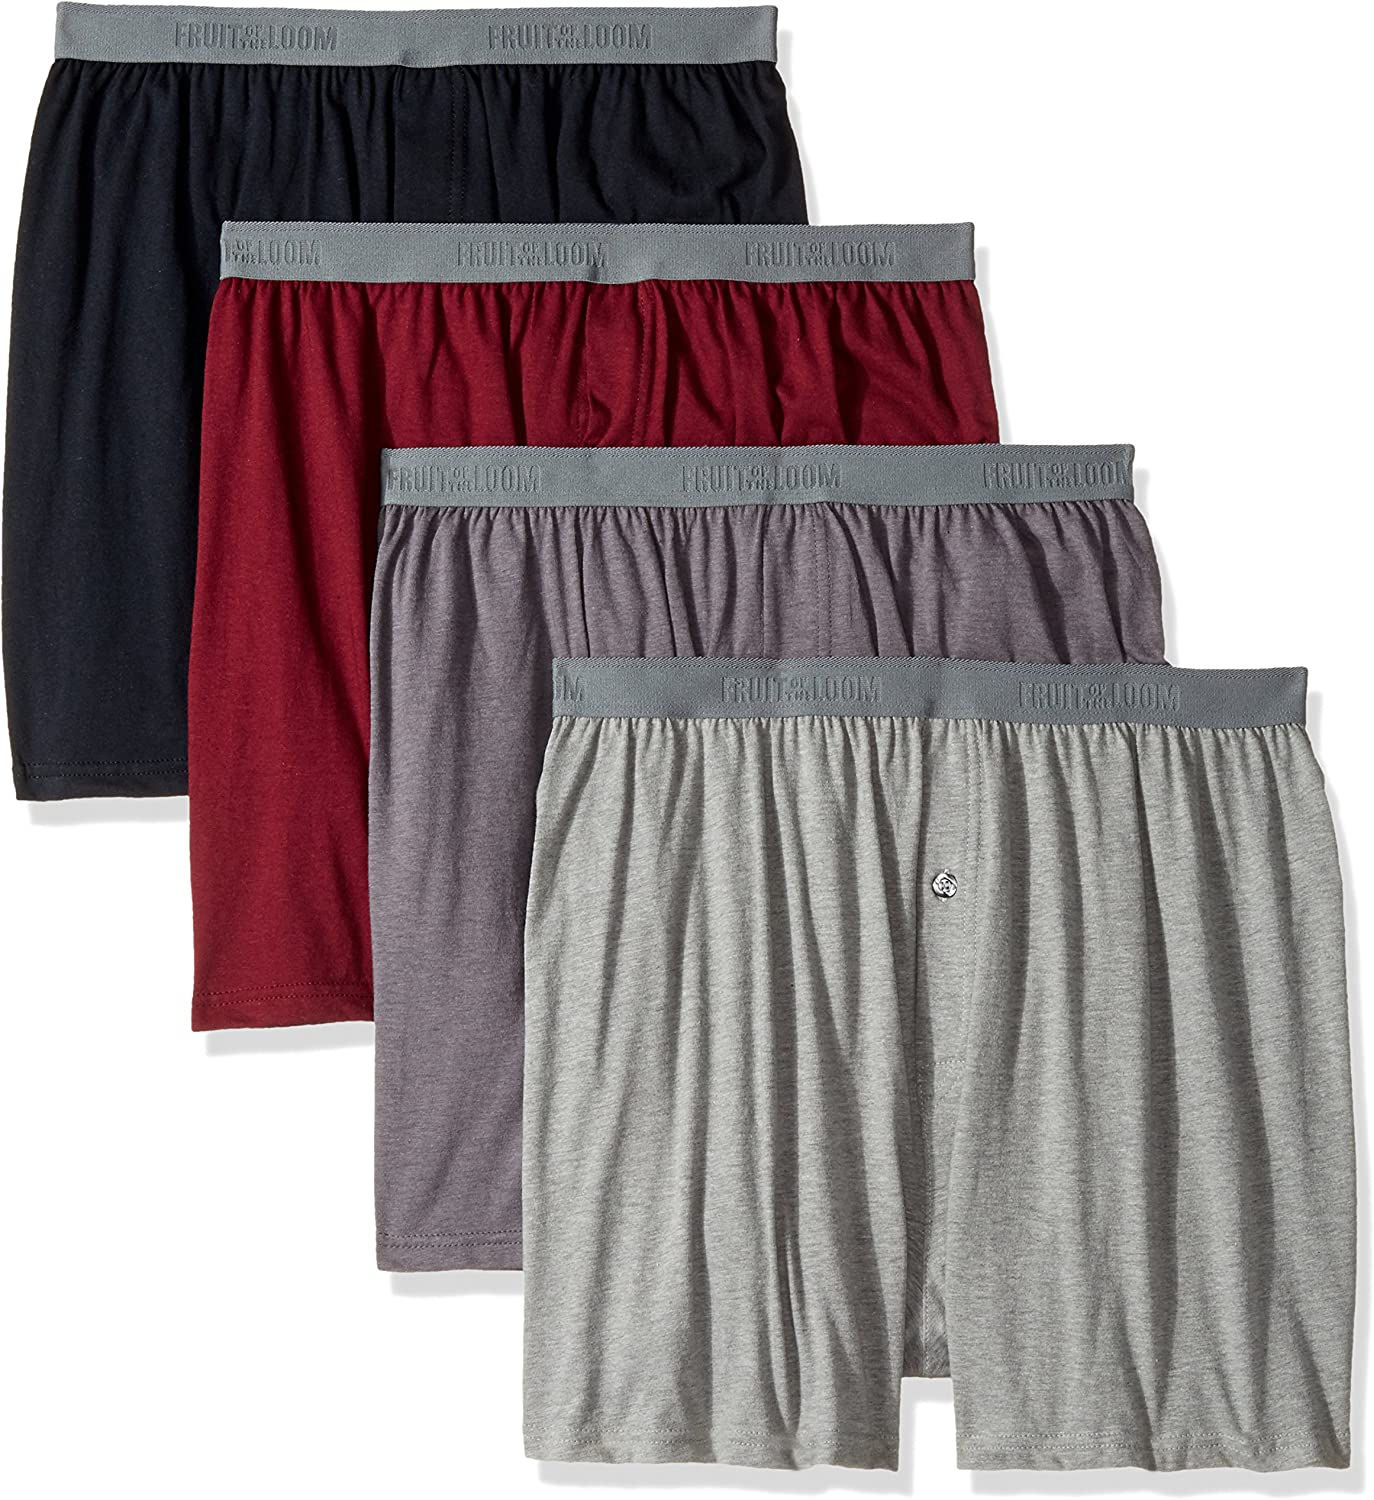 Fruit of the Loom Mens 12-Pack Knit Boxer Shorts Boxers Cotton Underwear